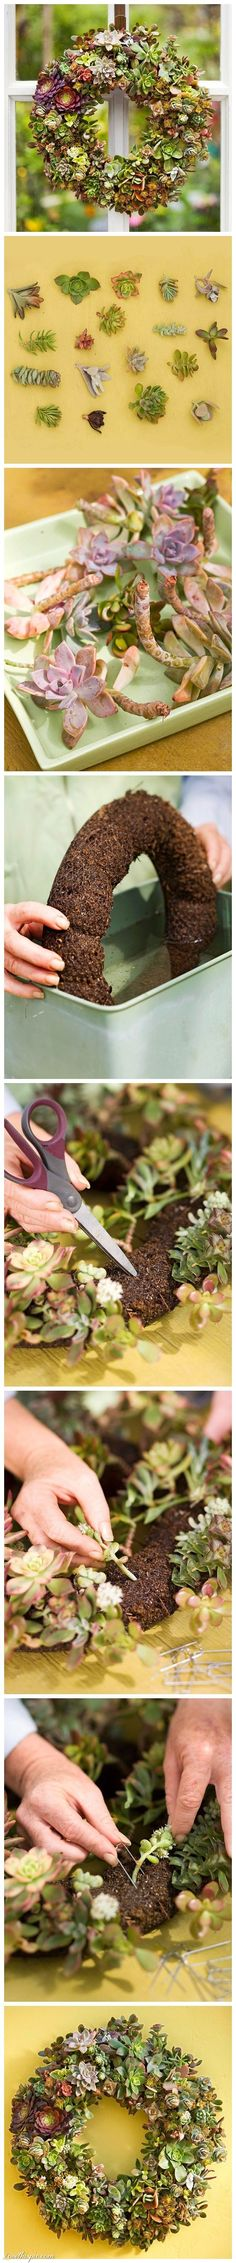 DIY Succulents Wreath Pictures, Photos, and Images for Facebook, Tumblr, Pinterest, and Twitter